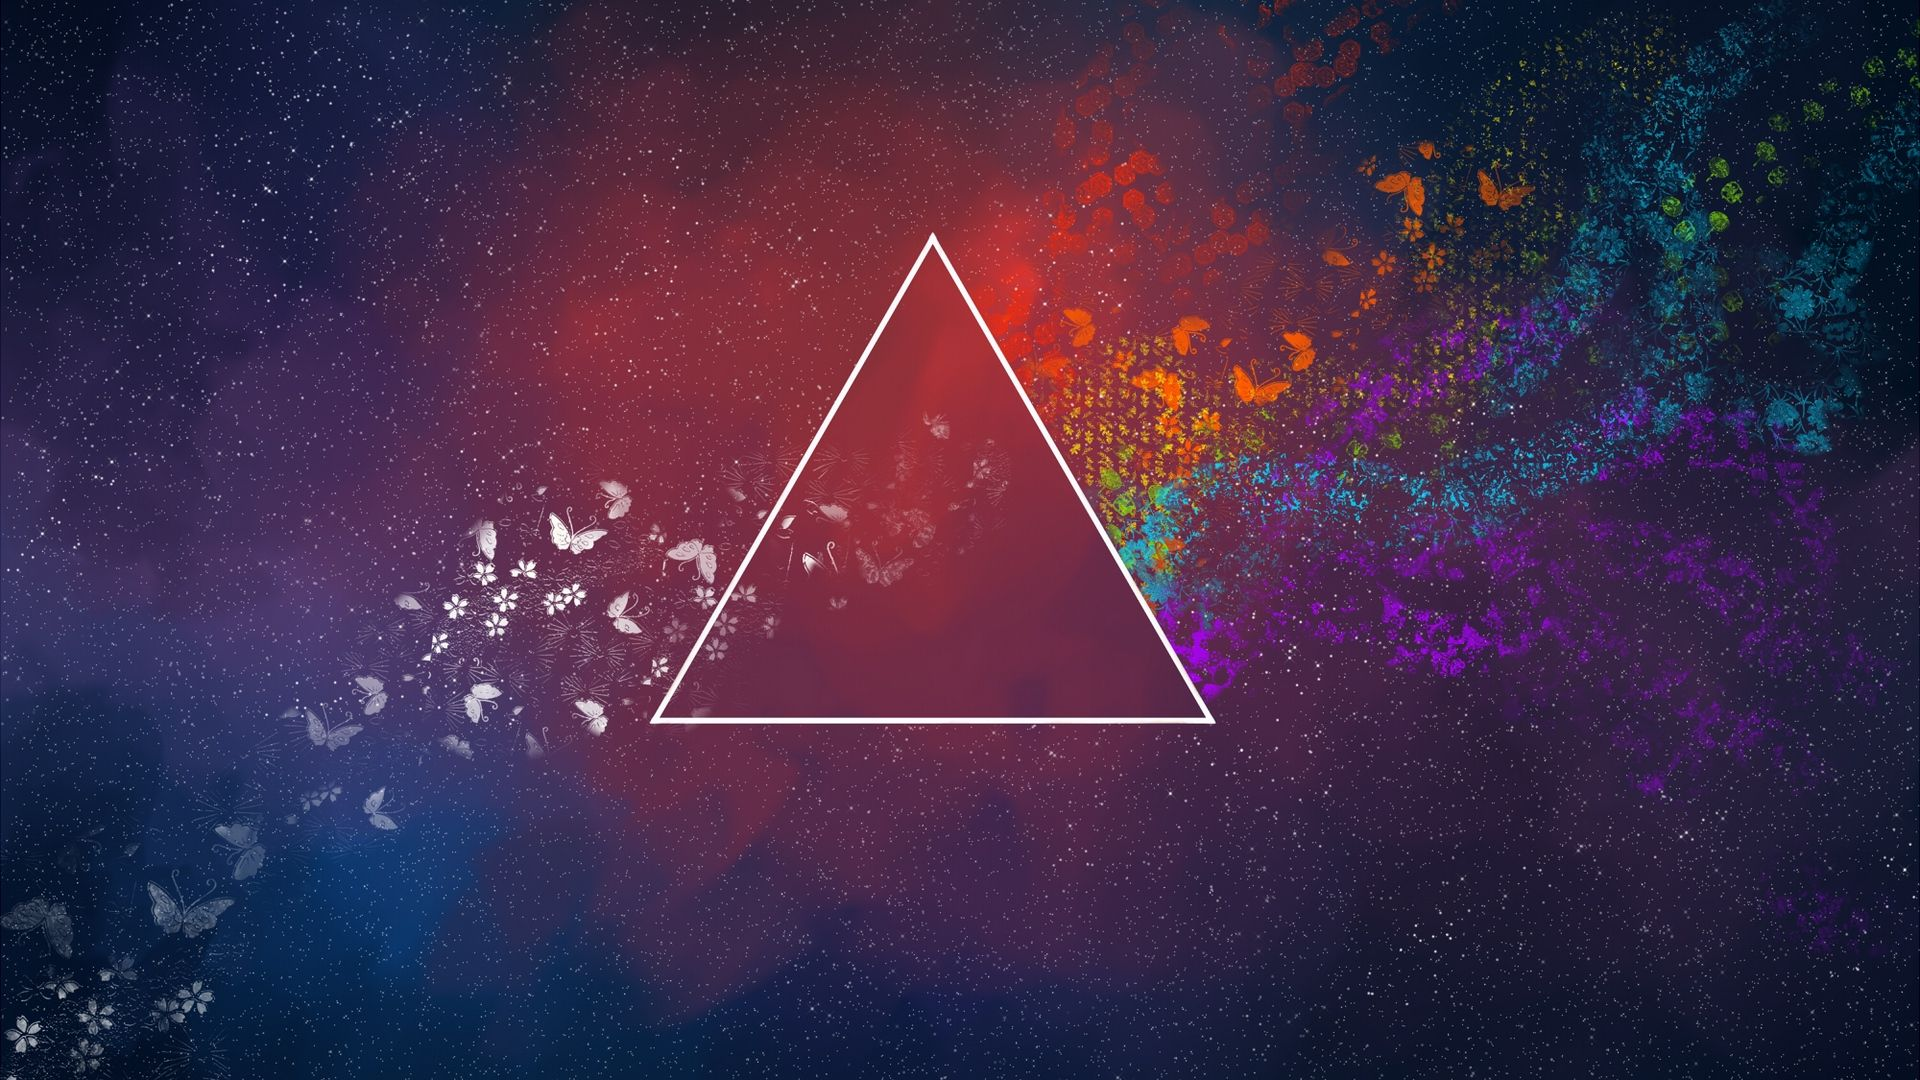 Triangle Free Download Wallpaper